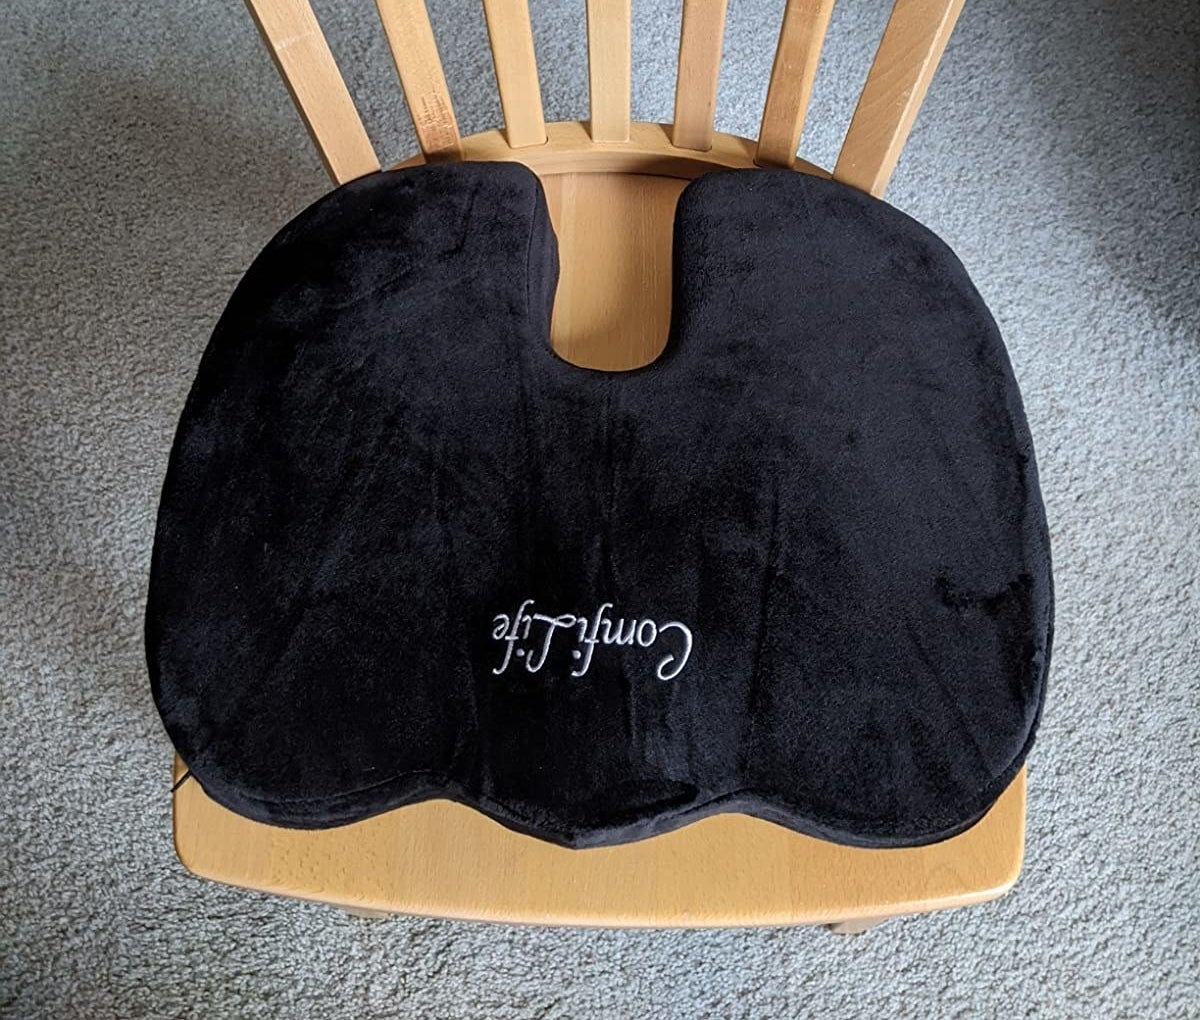 The black u-shaped cushion on a wooden chair